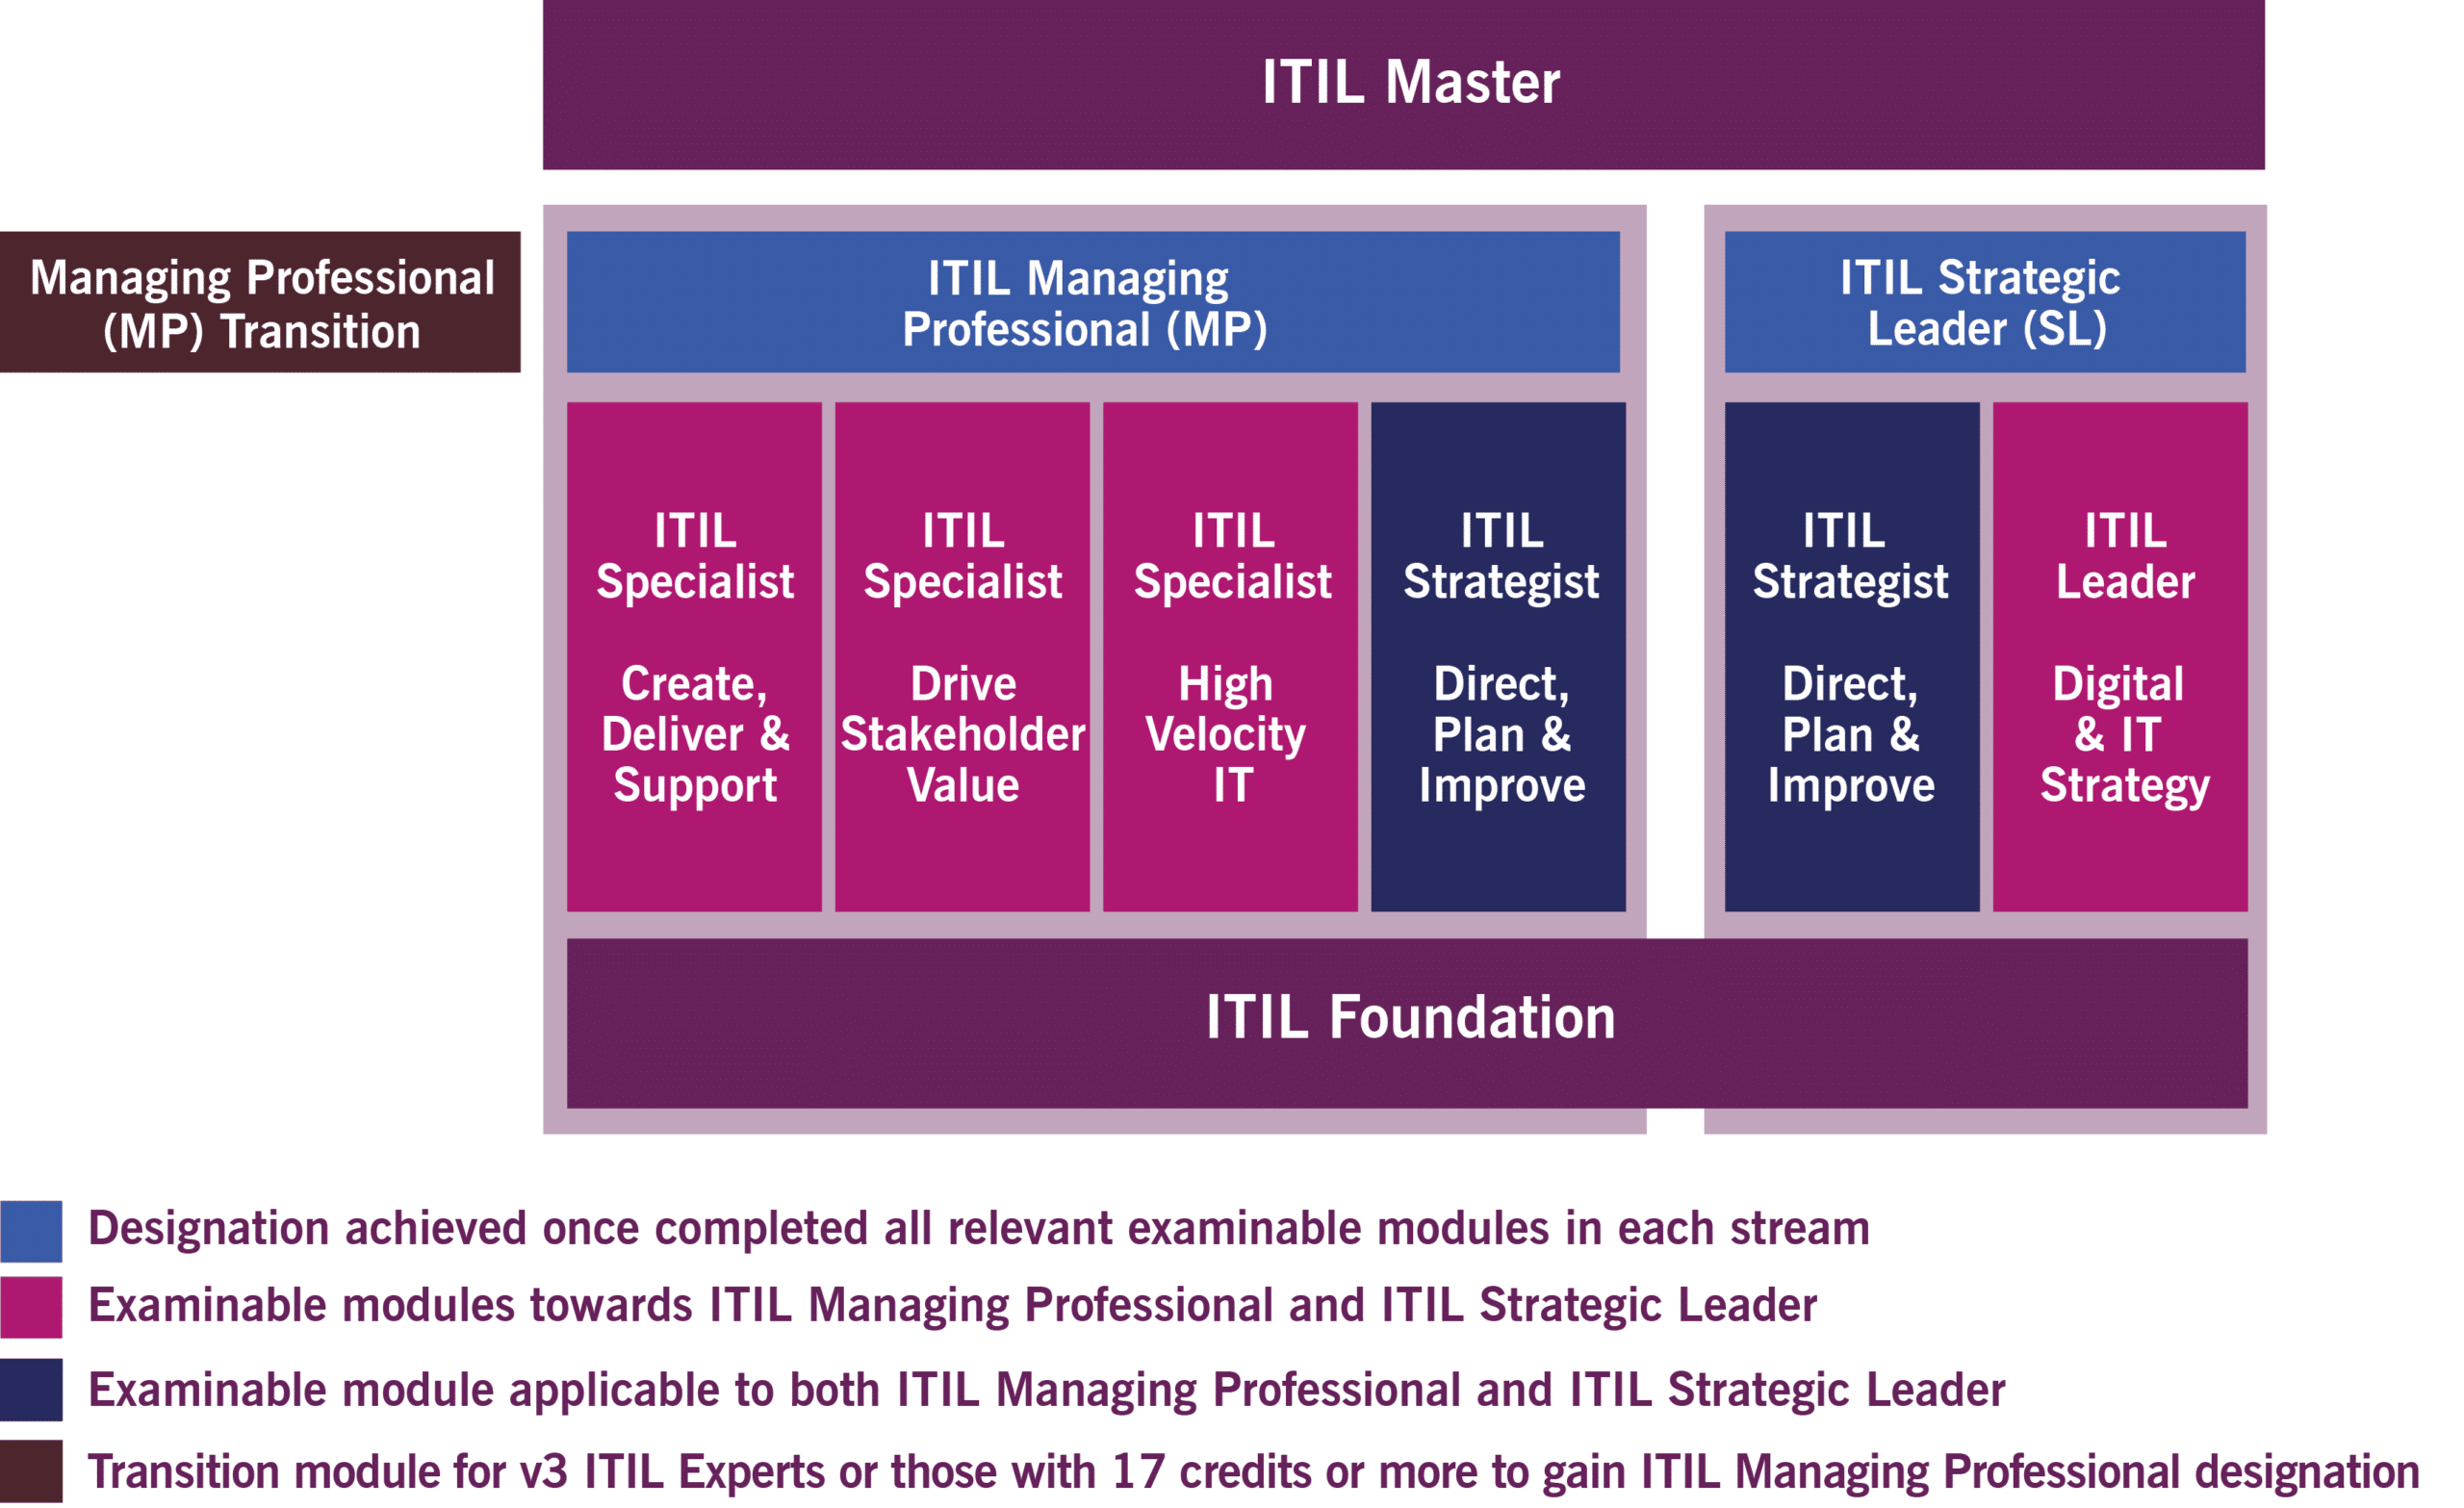 ITIL4 Certification Scheme Master with Transition